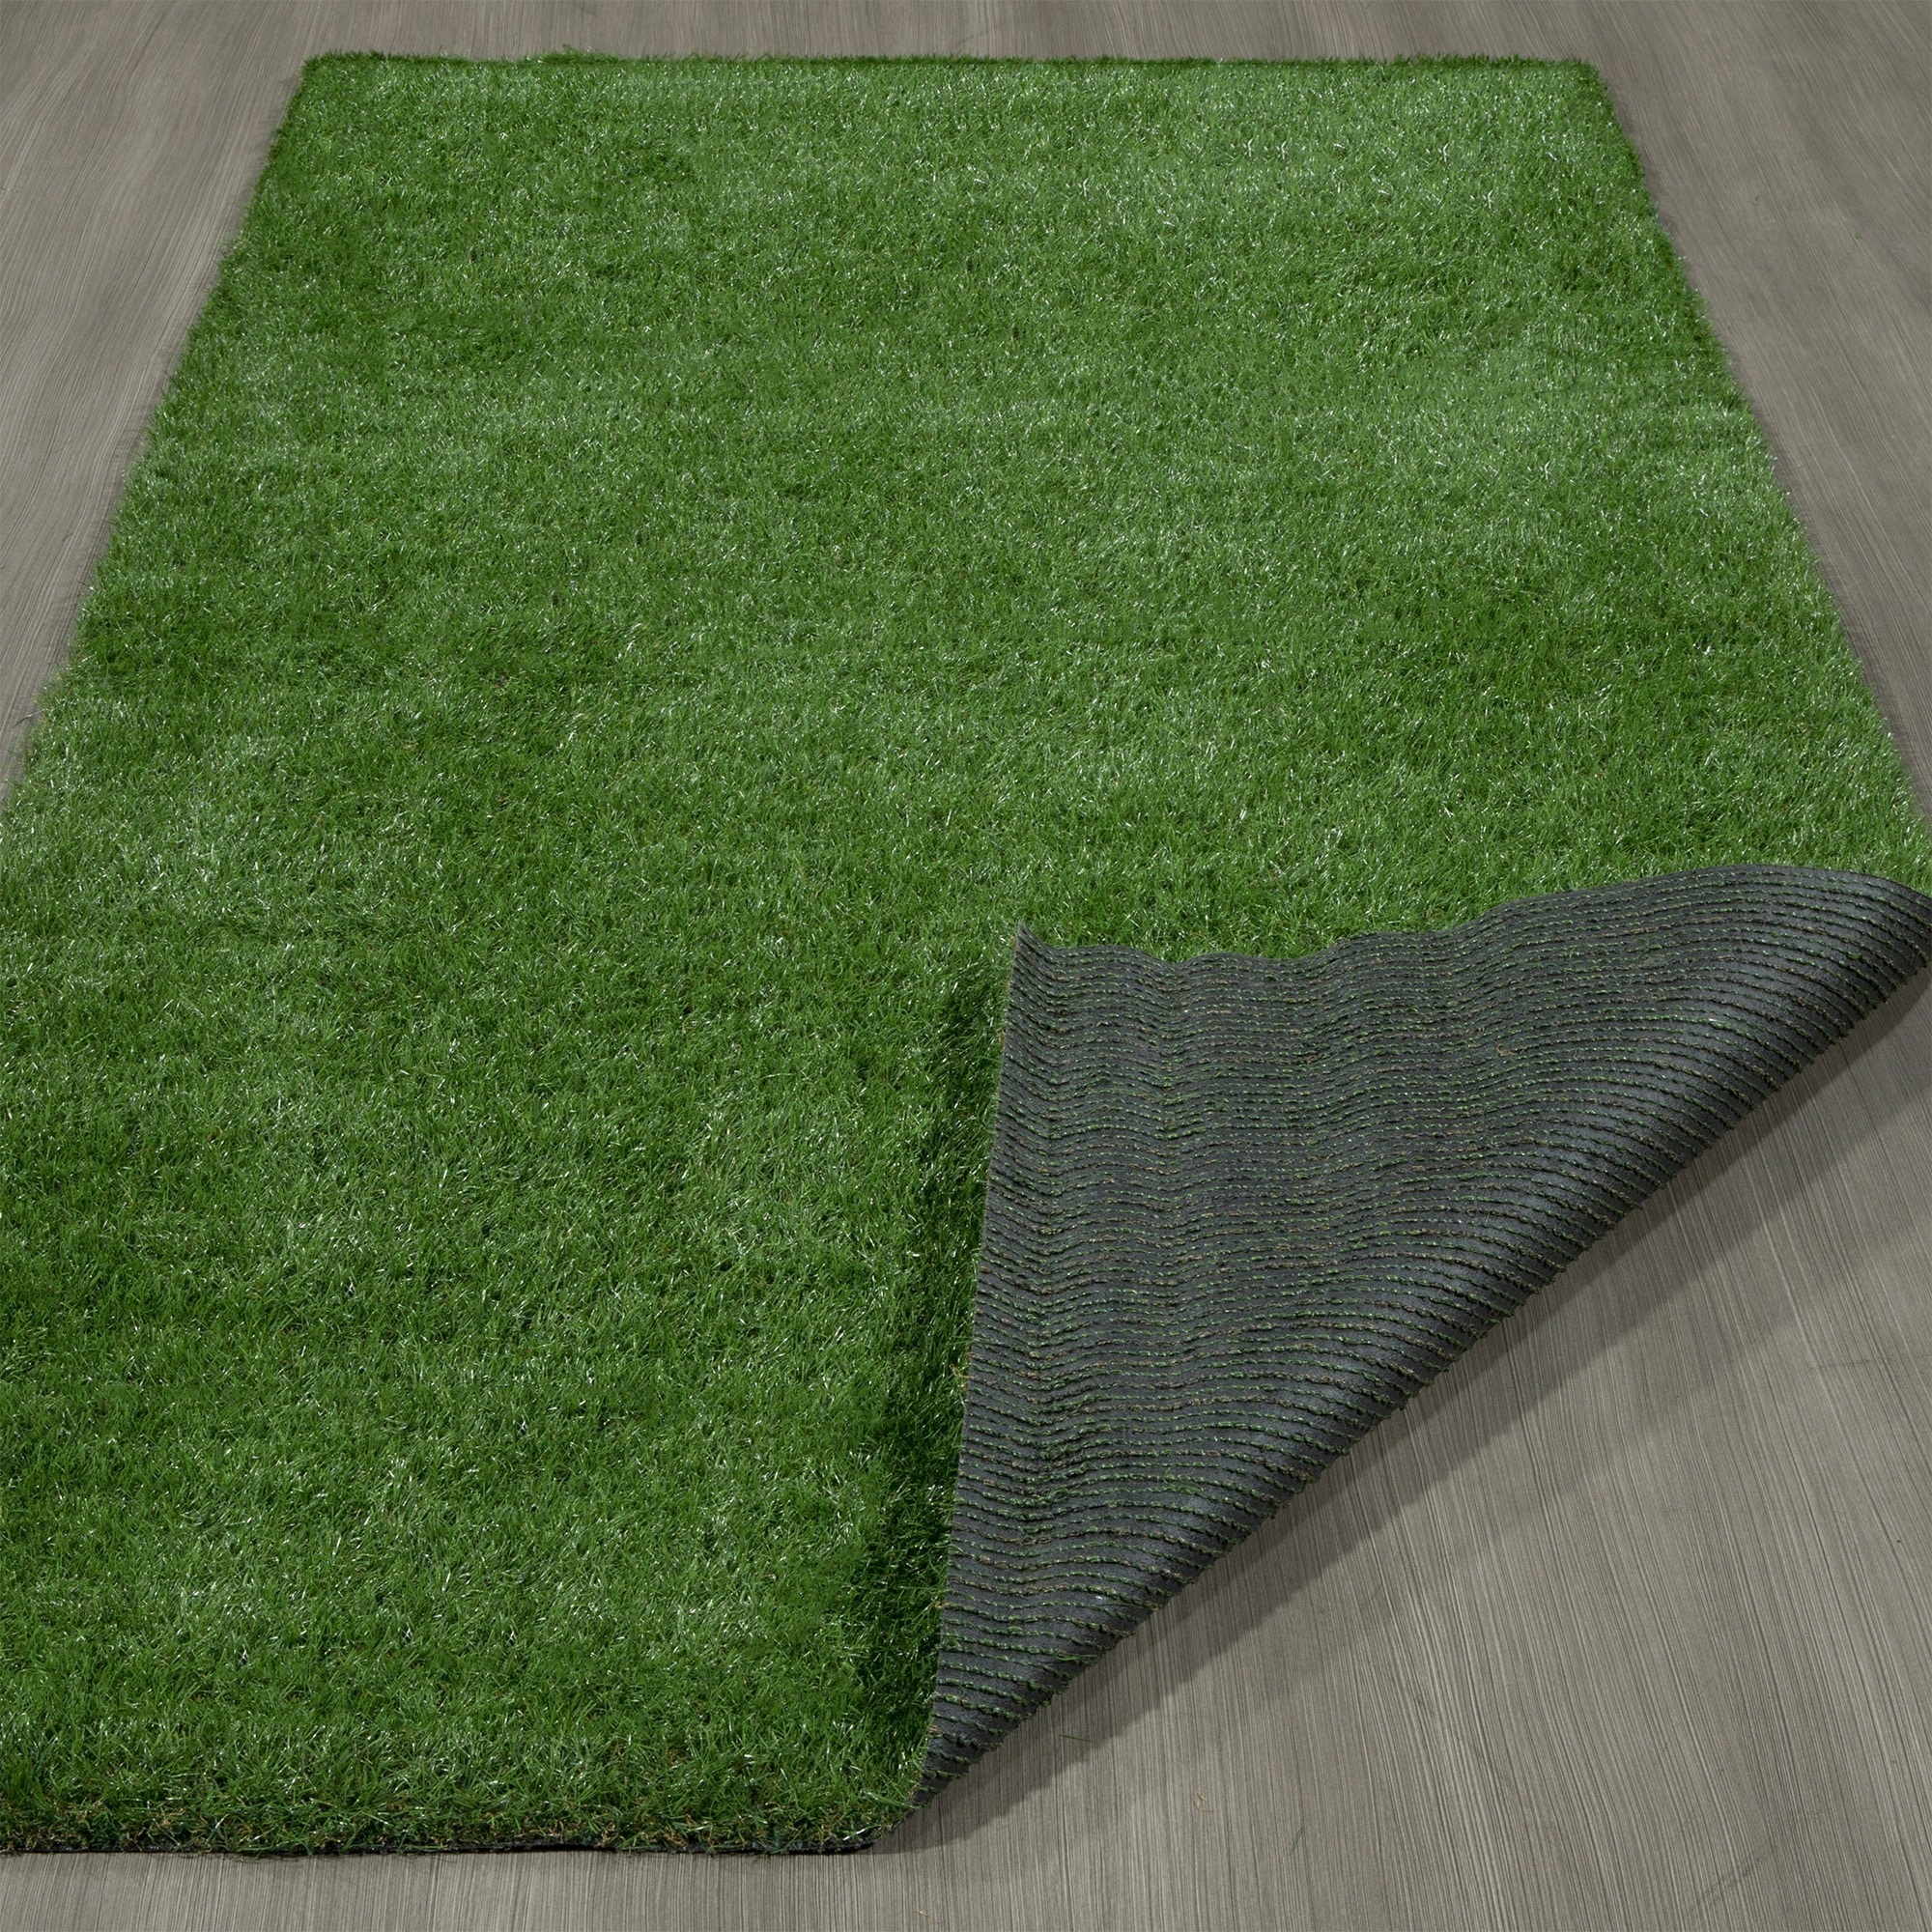 Garden Gr Indoor Outdoor Green Artificial Turf Area Rug 6 X 9 3 On Free Shipping Today 19885866